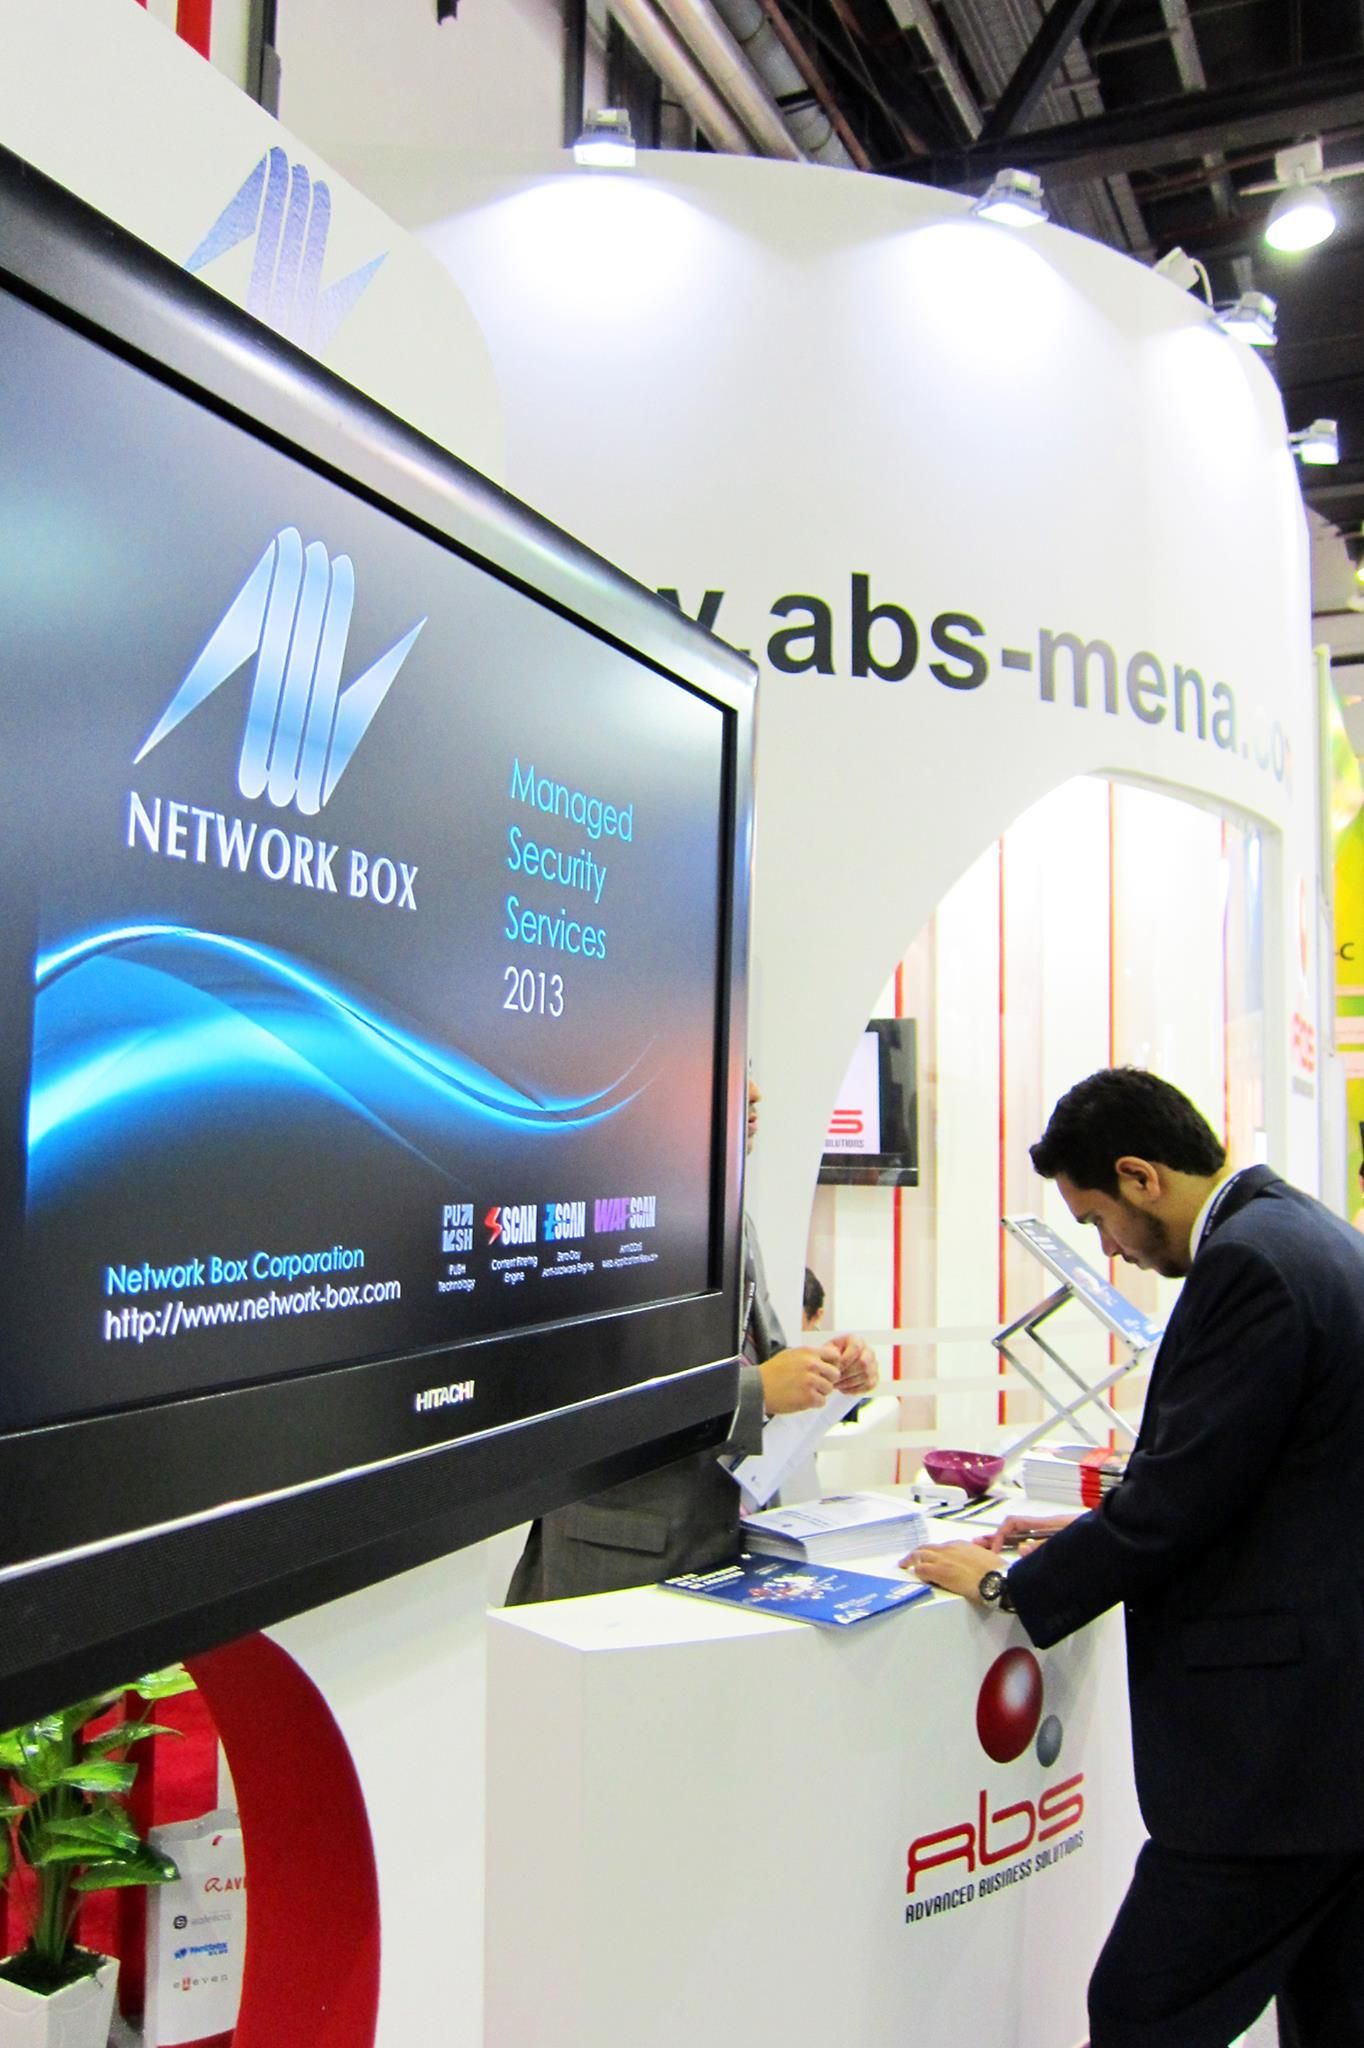 Come on and check out Network_Box latest technology at